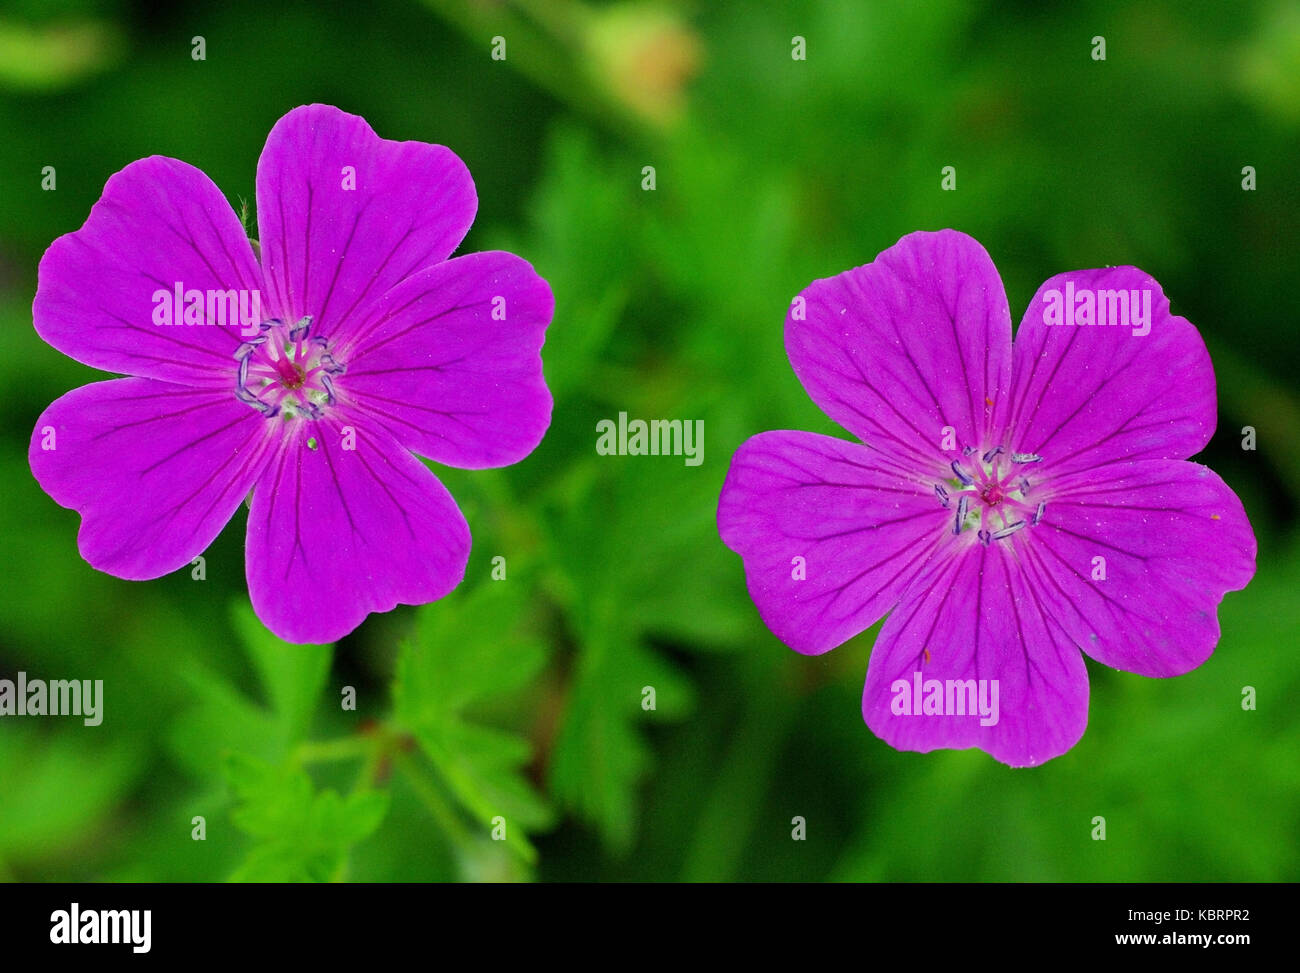 this is the wildflower Geranium columbinum, the Long-stalked crane's-bill or Dove's-foot, family Geraniaceae - Stock Image